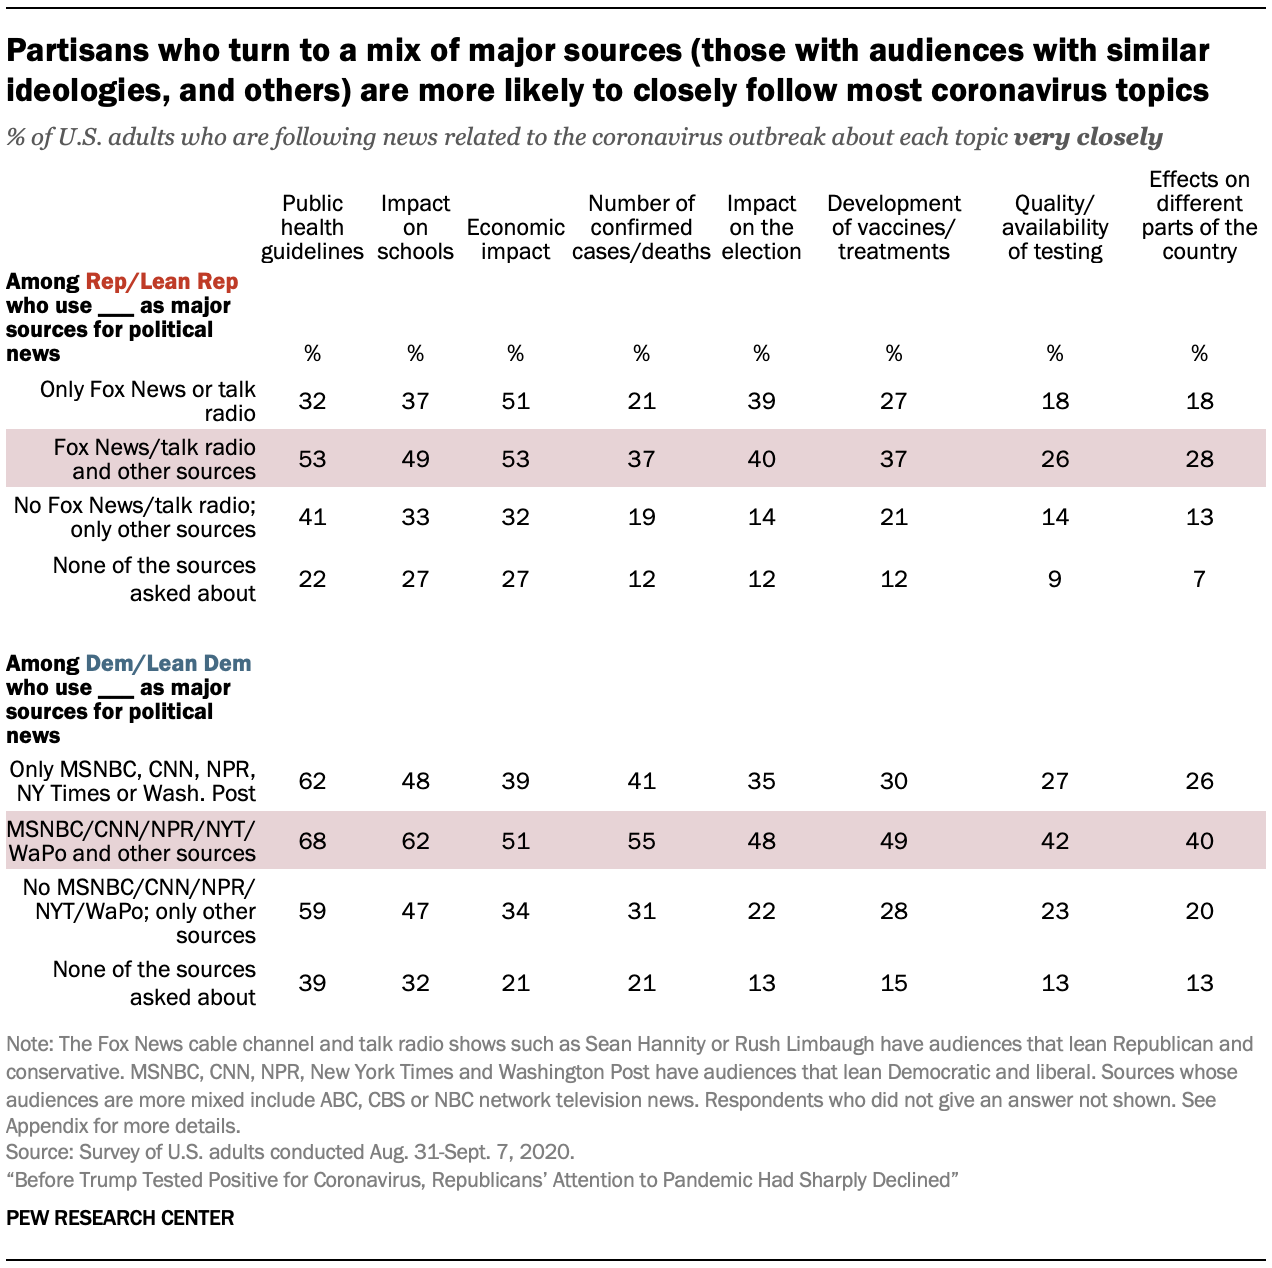 Partisans who turn to a mix of major sources (those with audiences with similar ideologies, and others) are more likely to closely follow most coronavirus topics